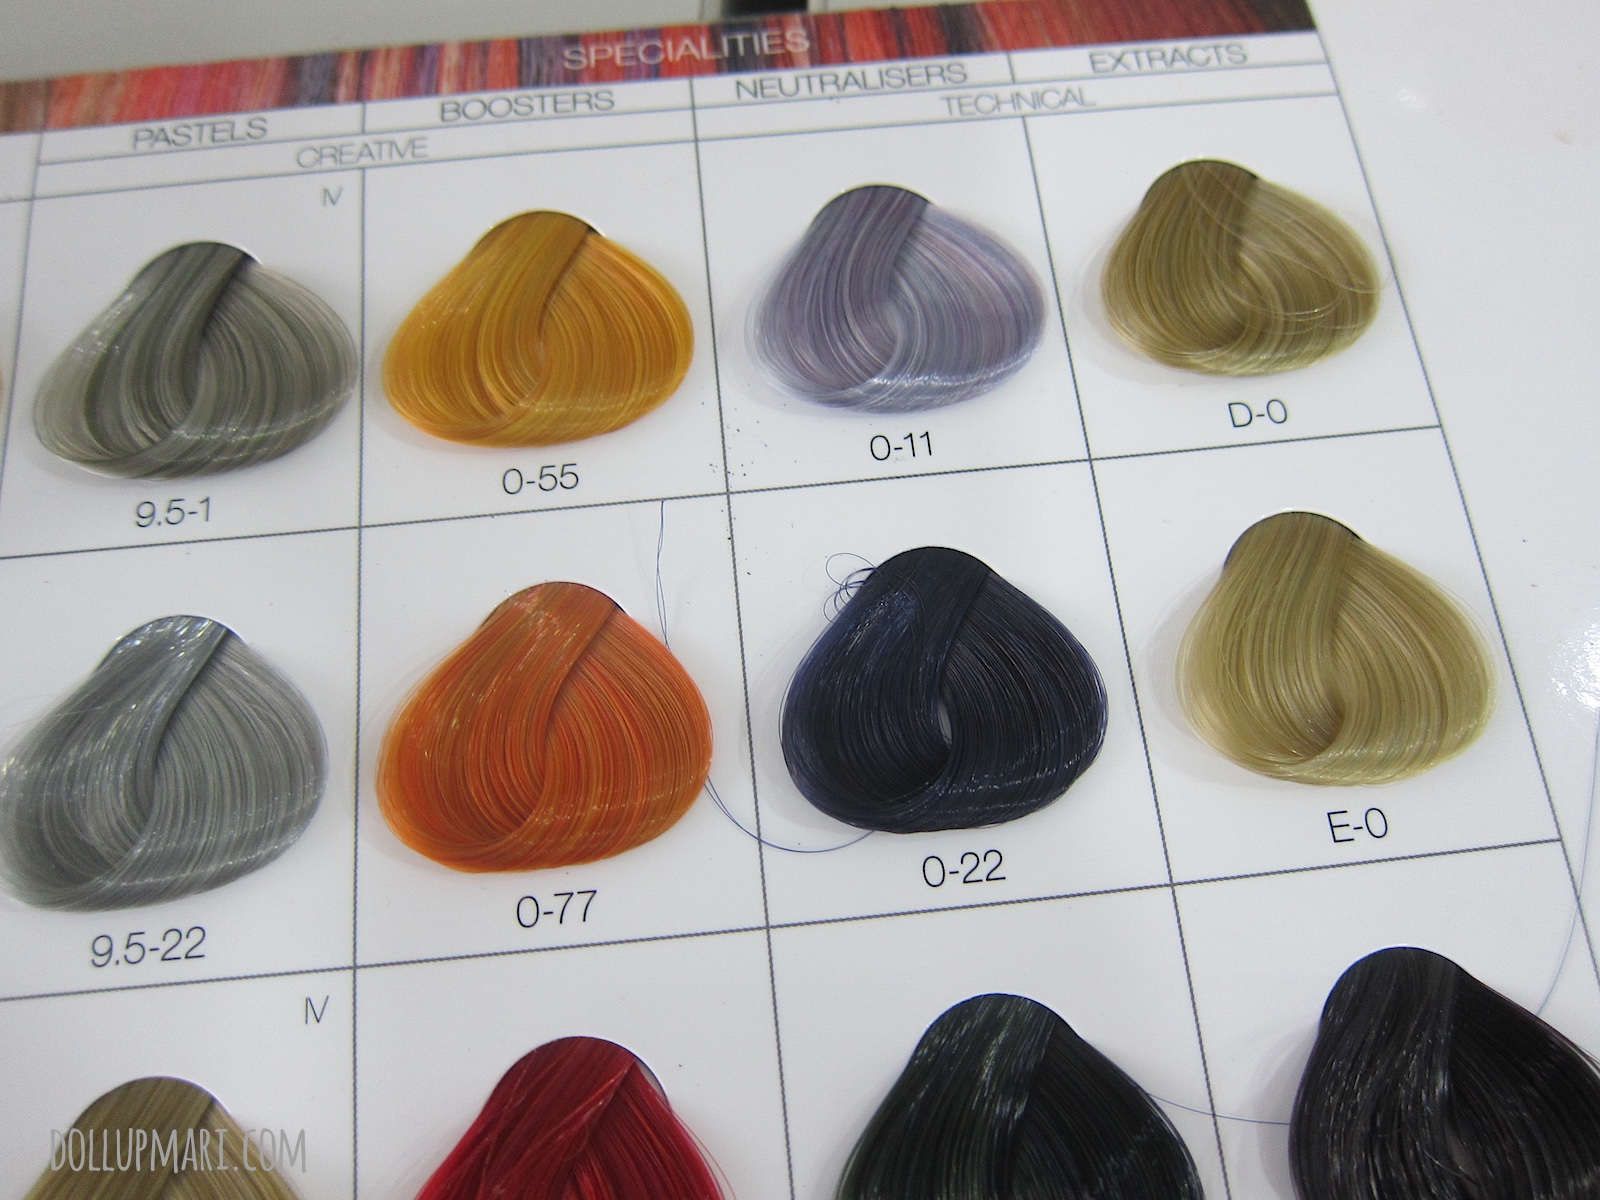 Schwarzkopf Color Chart for shades 9.5-1, 0-55, 0-11, D-0, 9.5-22, 0-77, 0-22, E-0